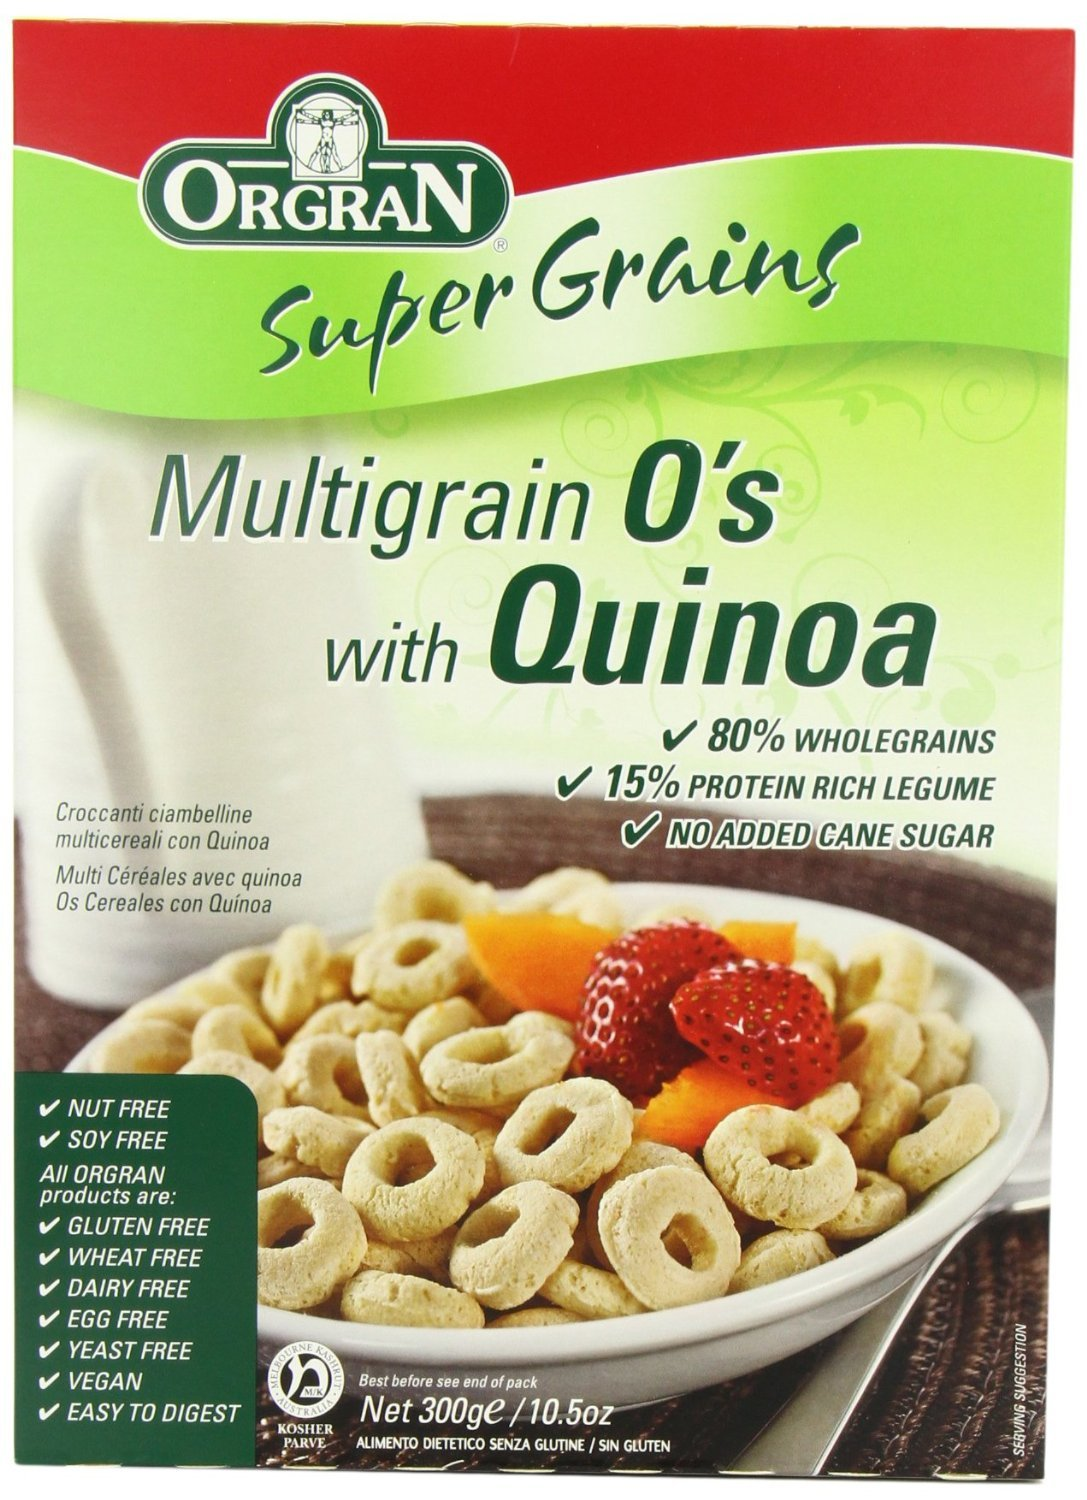 Orgran - Supergrains - Multigrain Breakfast Os with Quinoa - 300g (Case of 6)